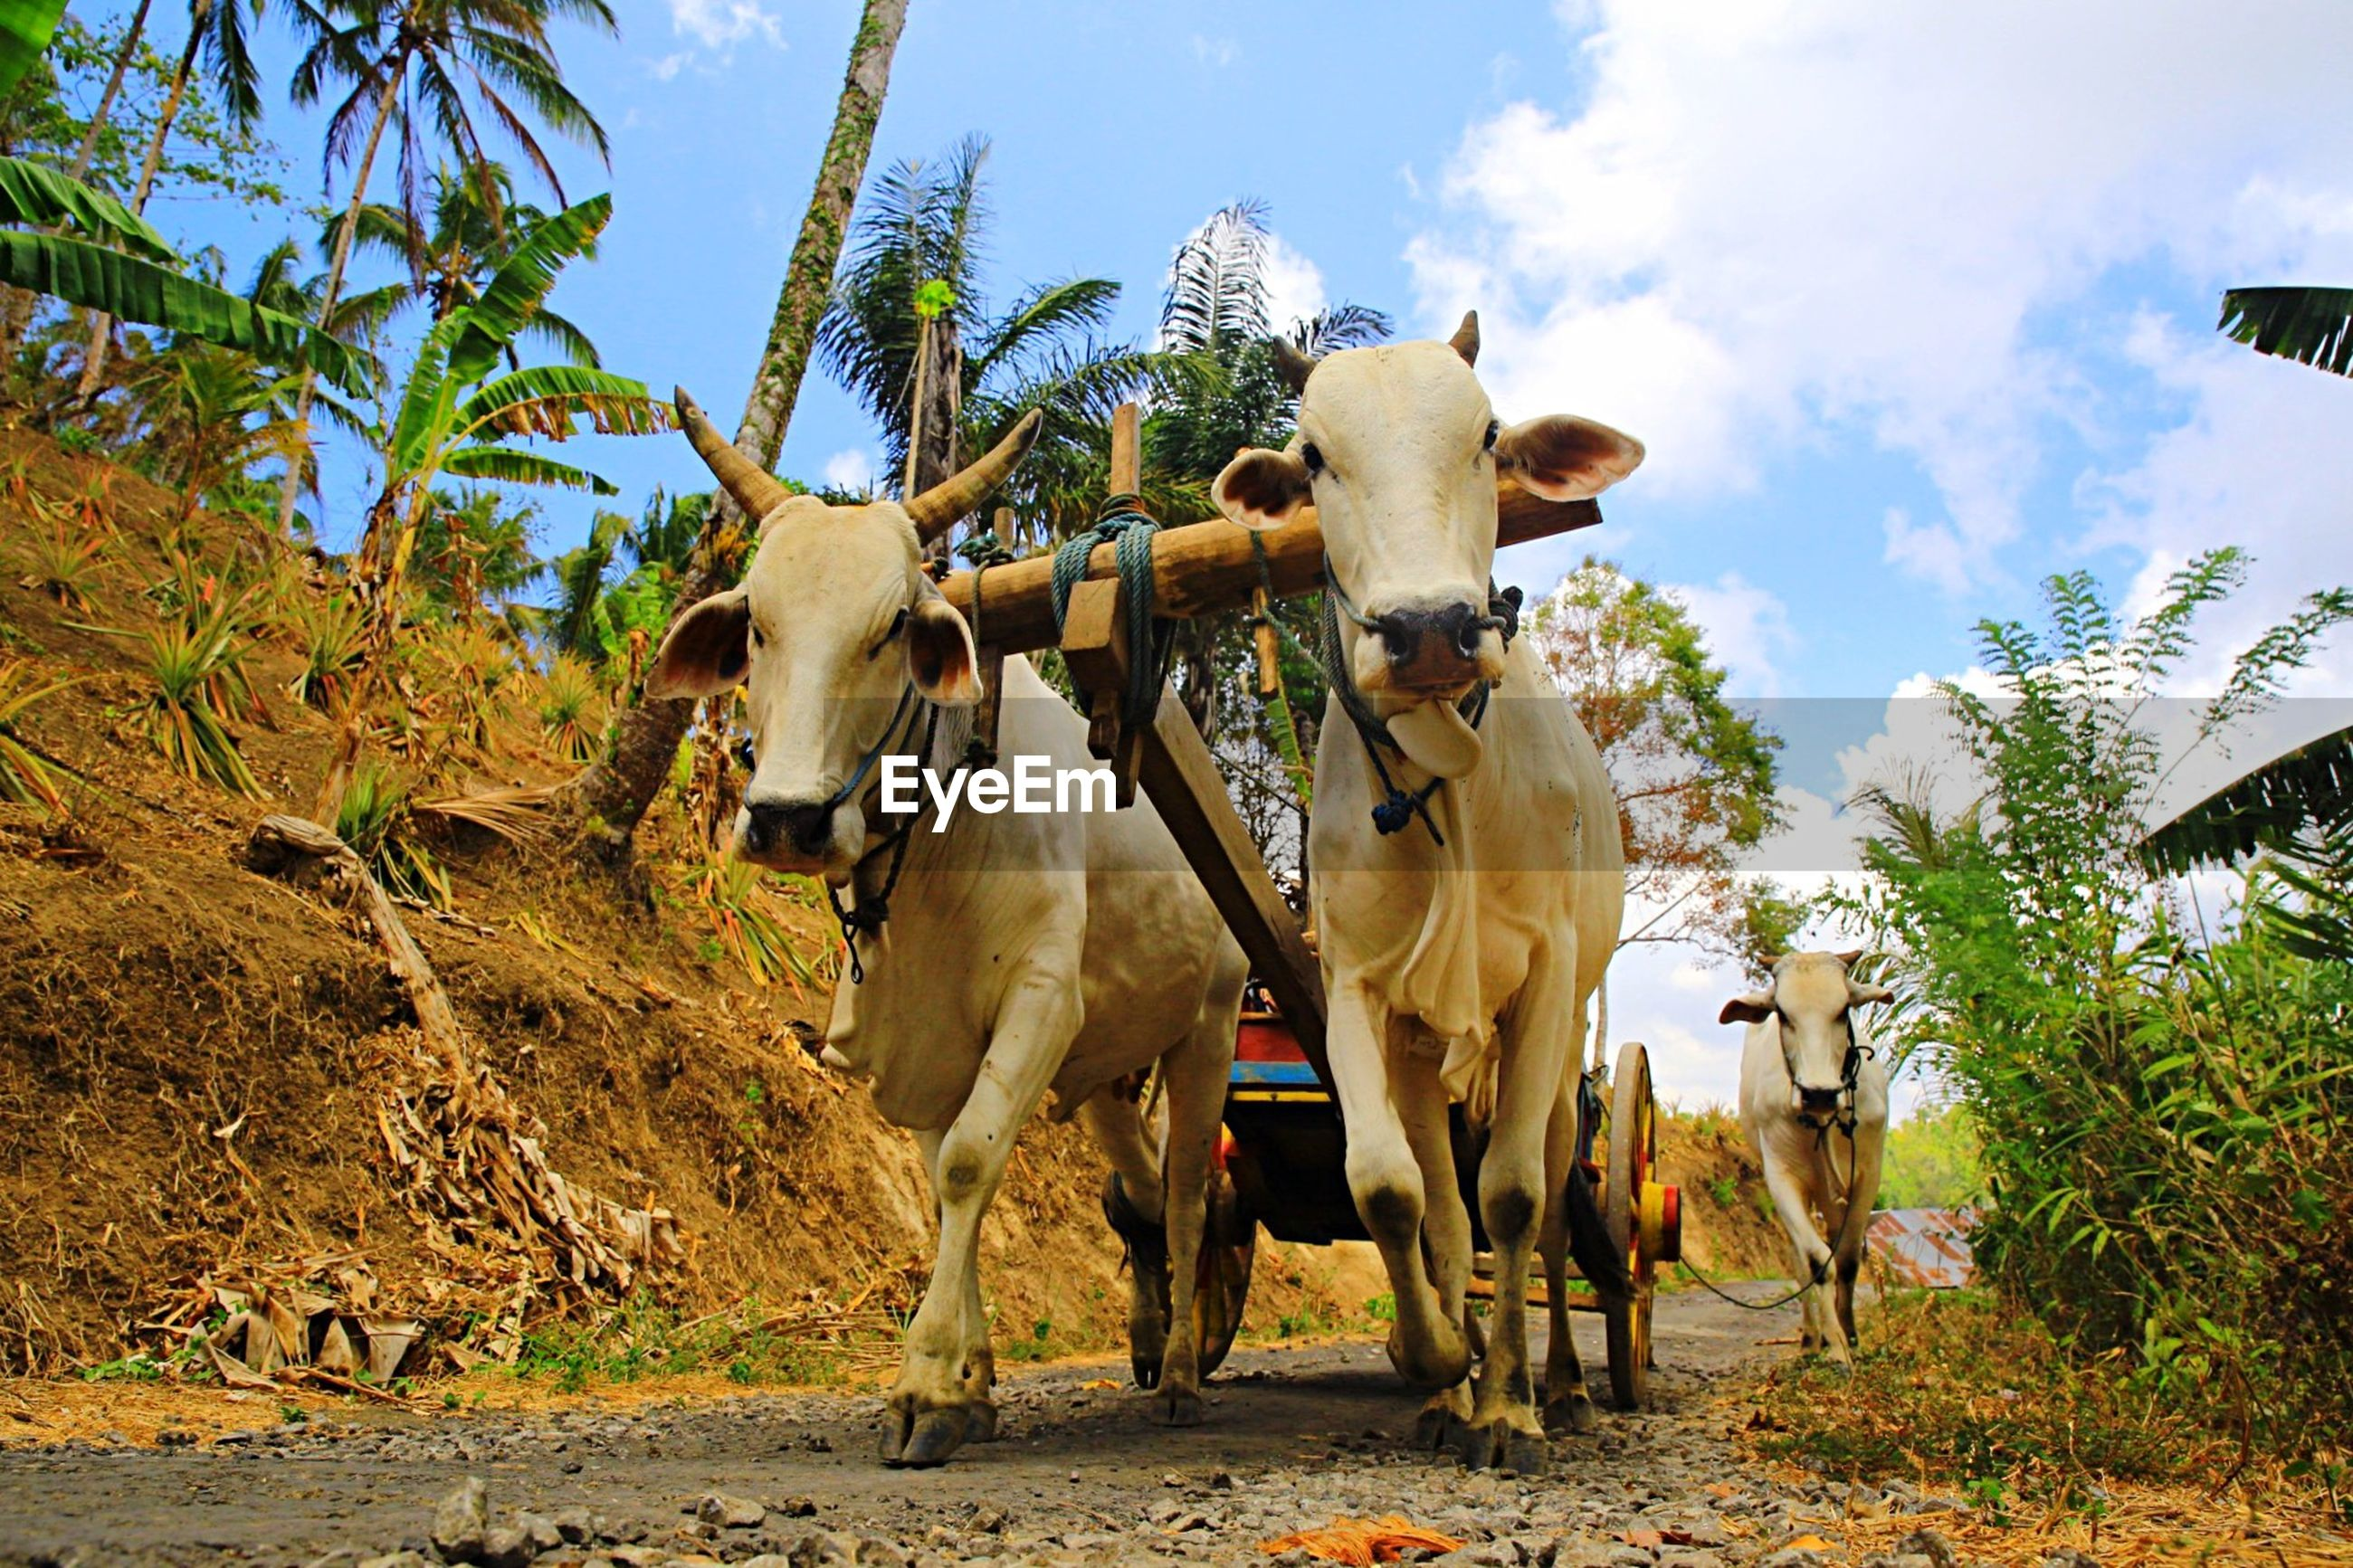 Low angle view of cow cart on street